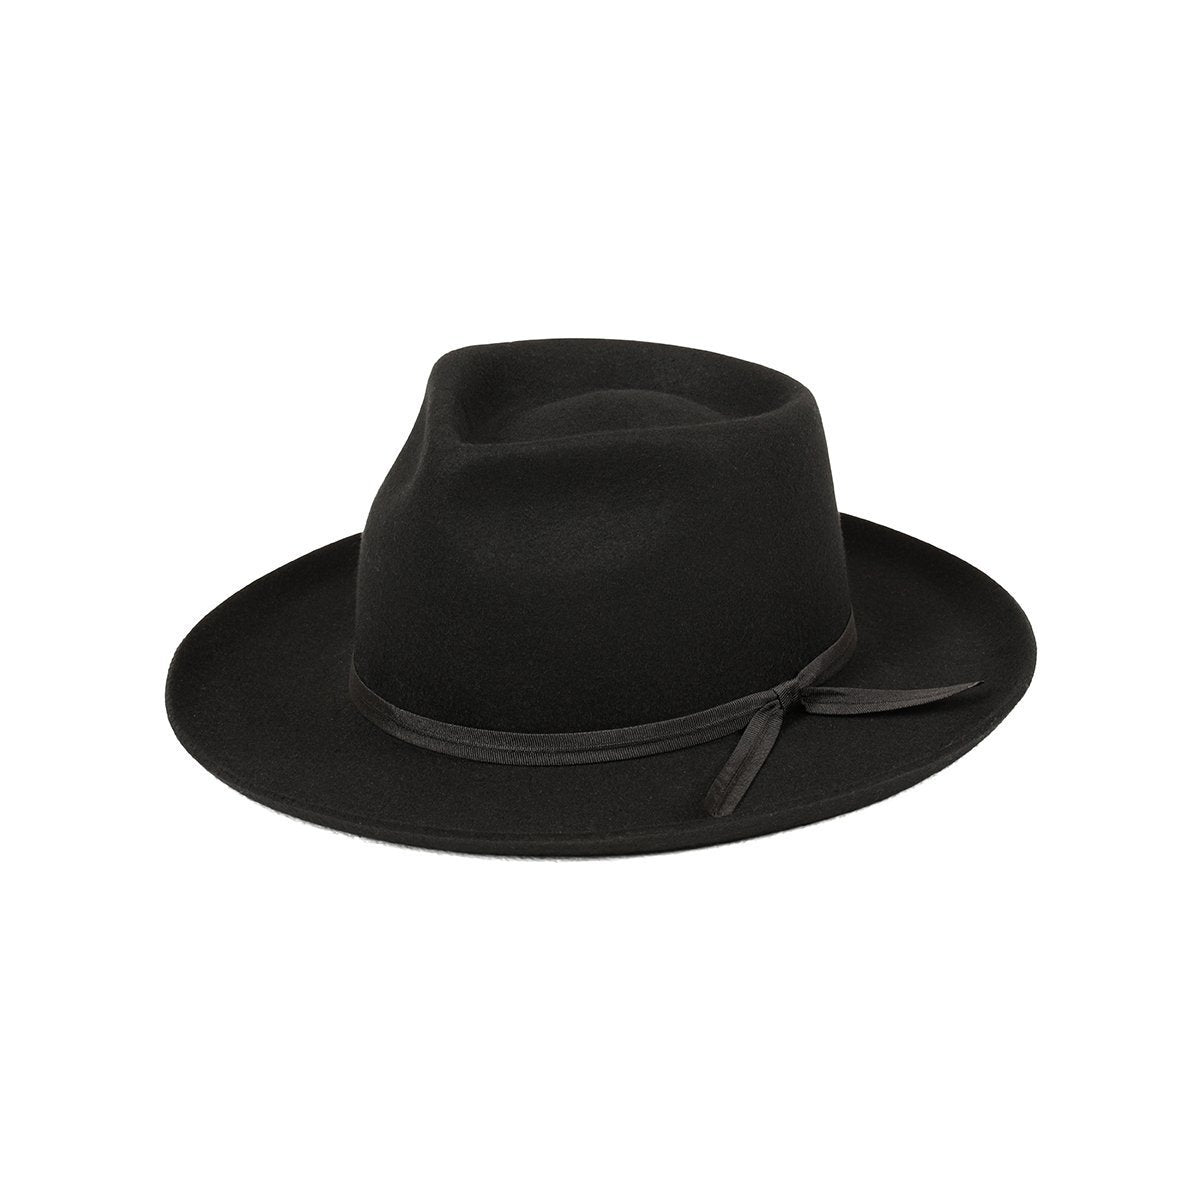 Load image into Gallery viewer, Lack of Color Jethro Hat II | Womens Hats